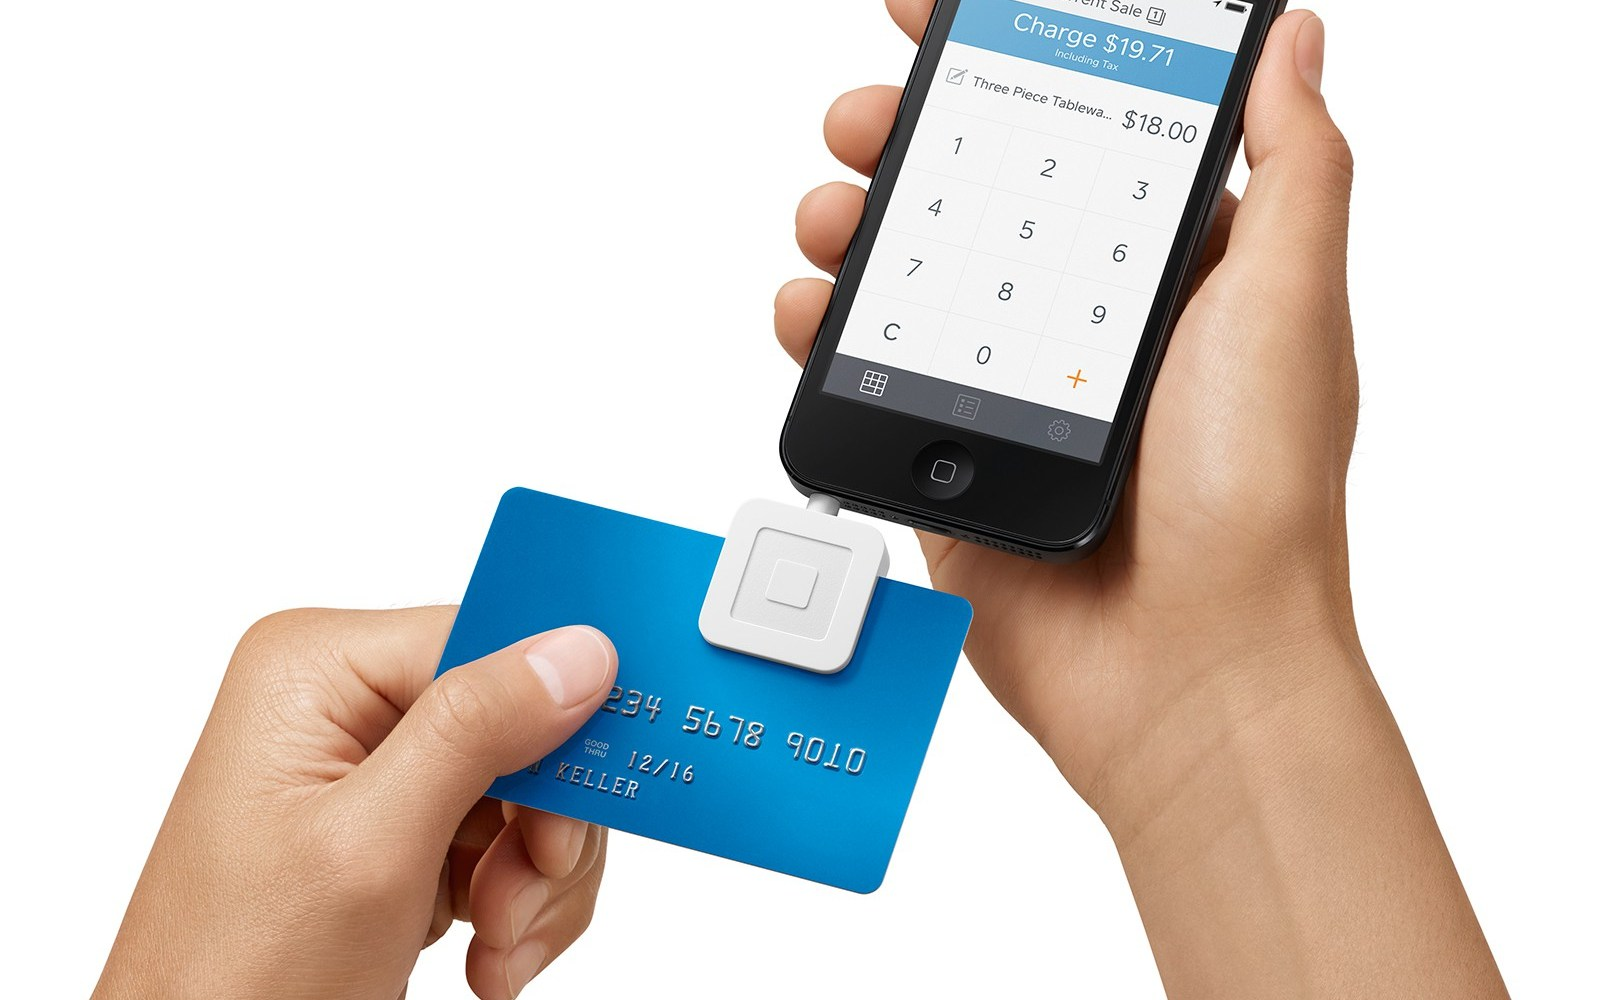 Square notifying existing customers to update to new card reader for free